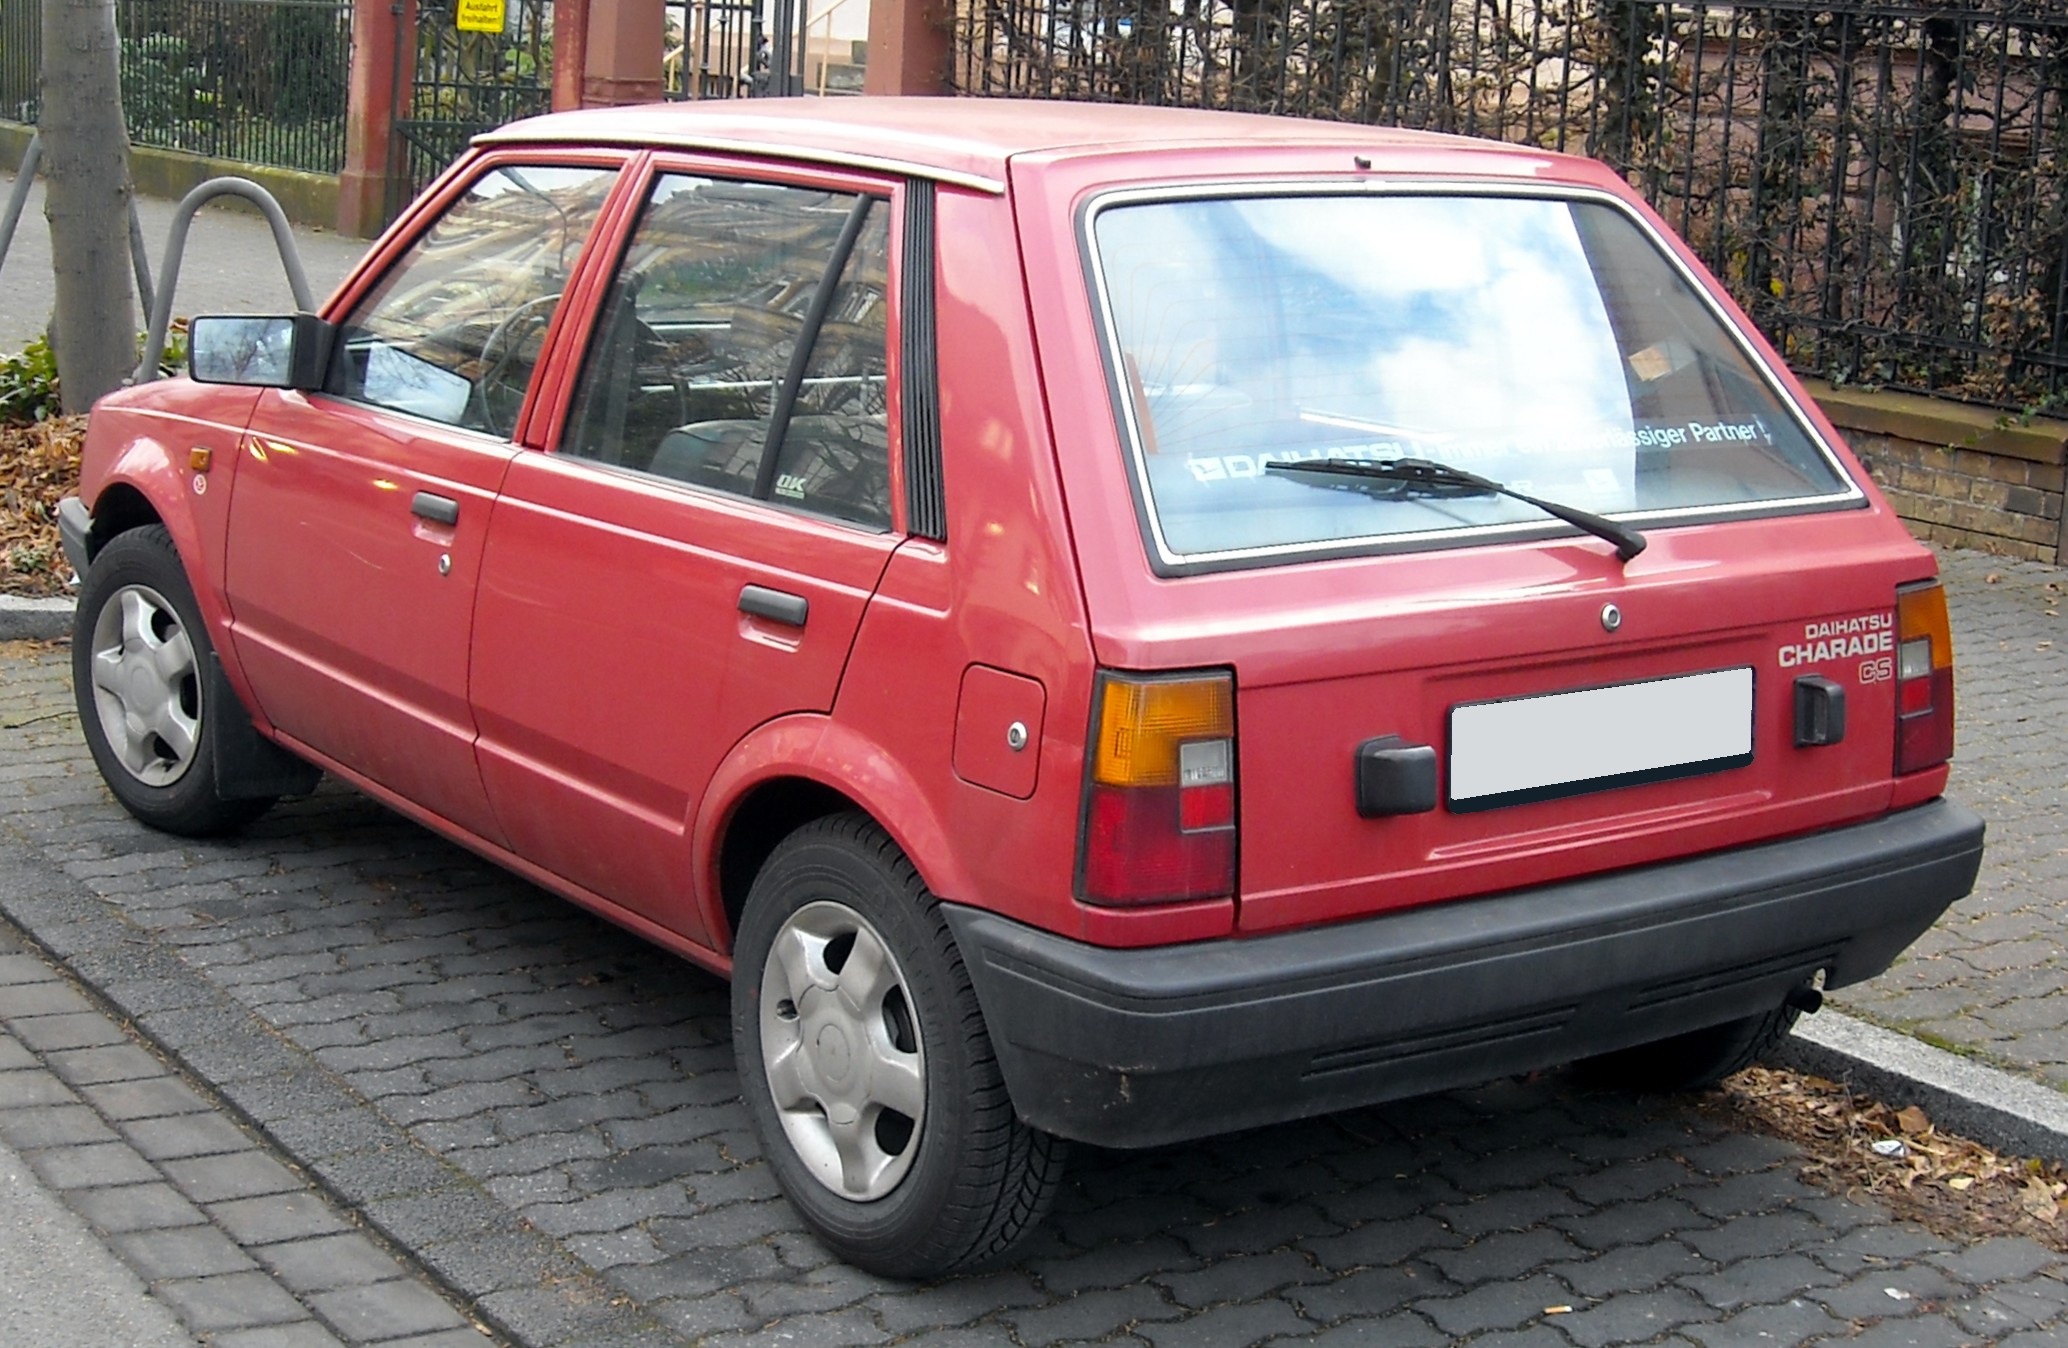 Daihatsu Charade 1987 Exterior Rear End